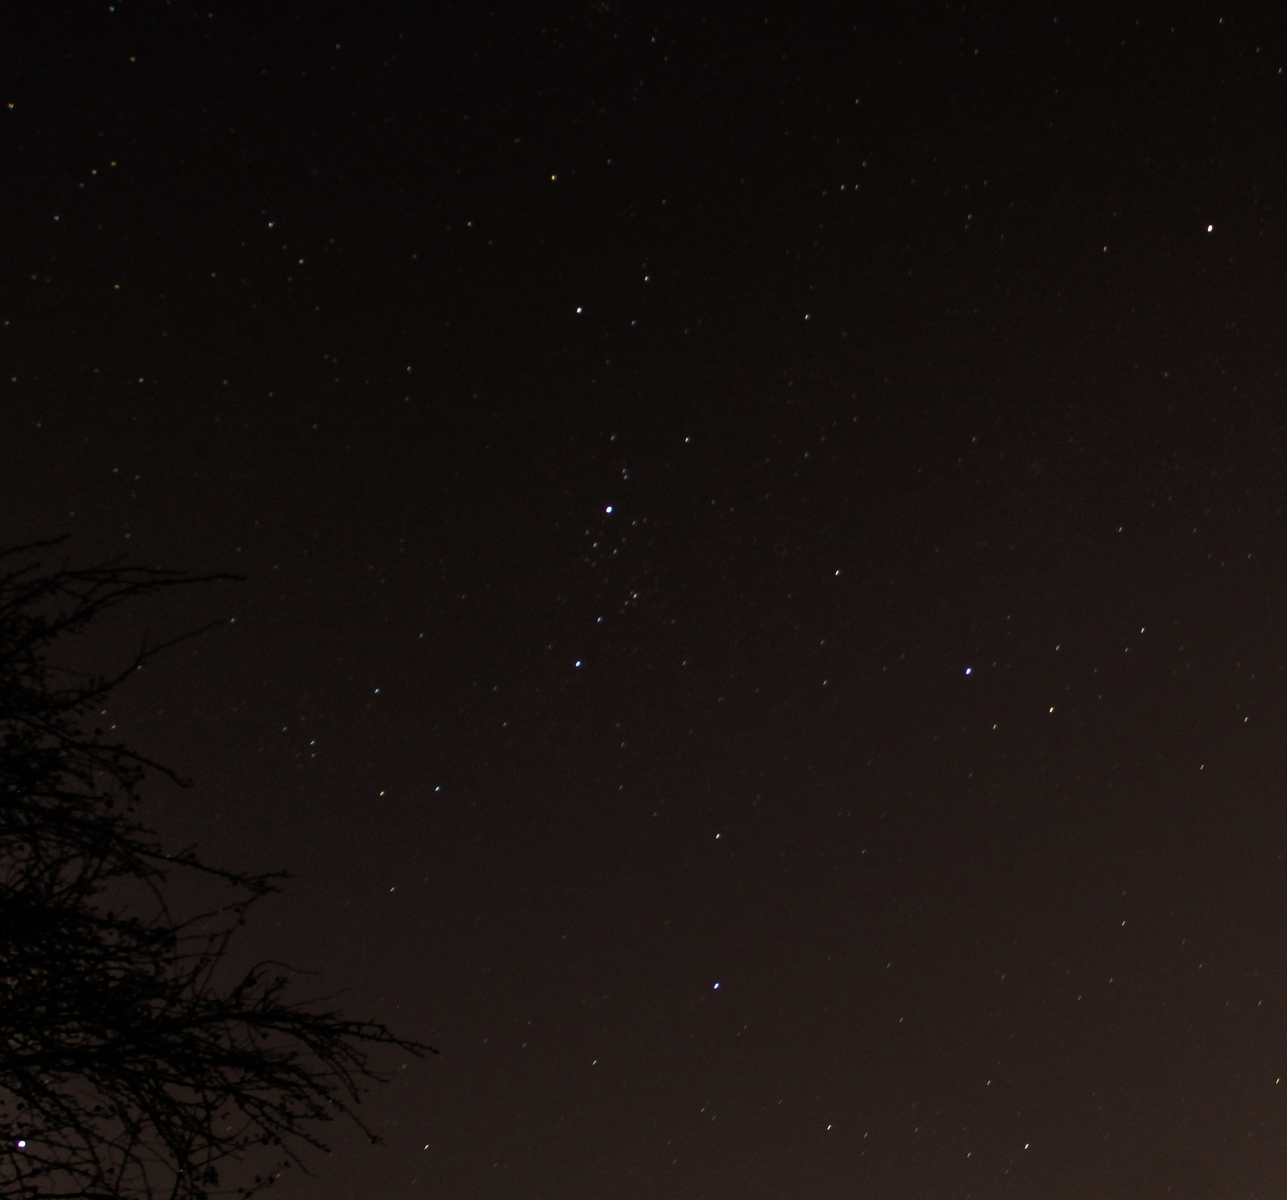 Double Cluster (Wide View)